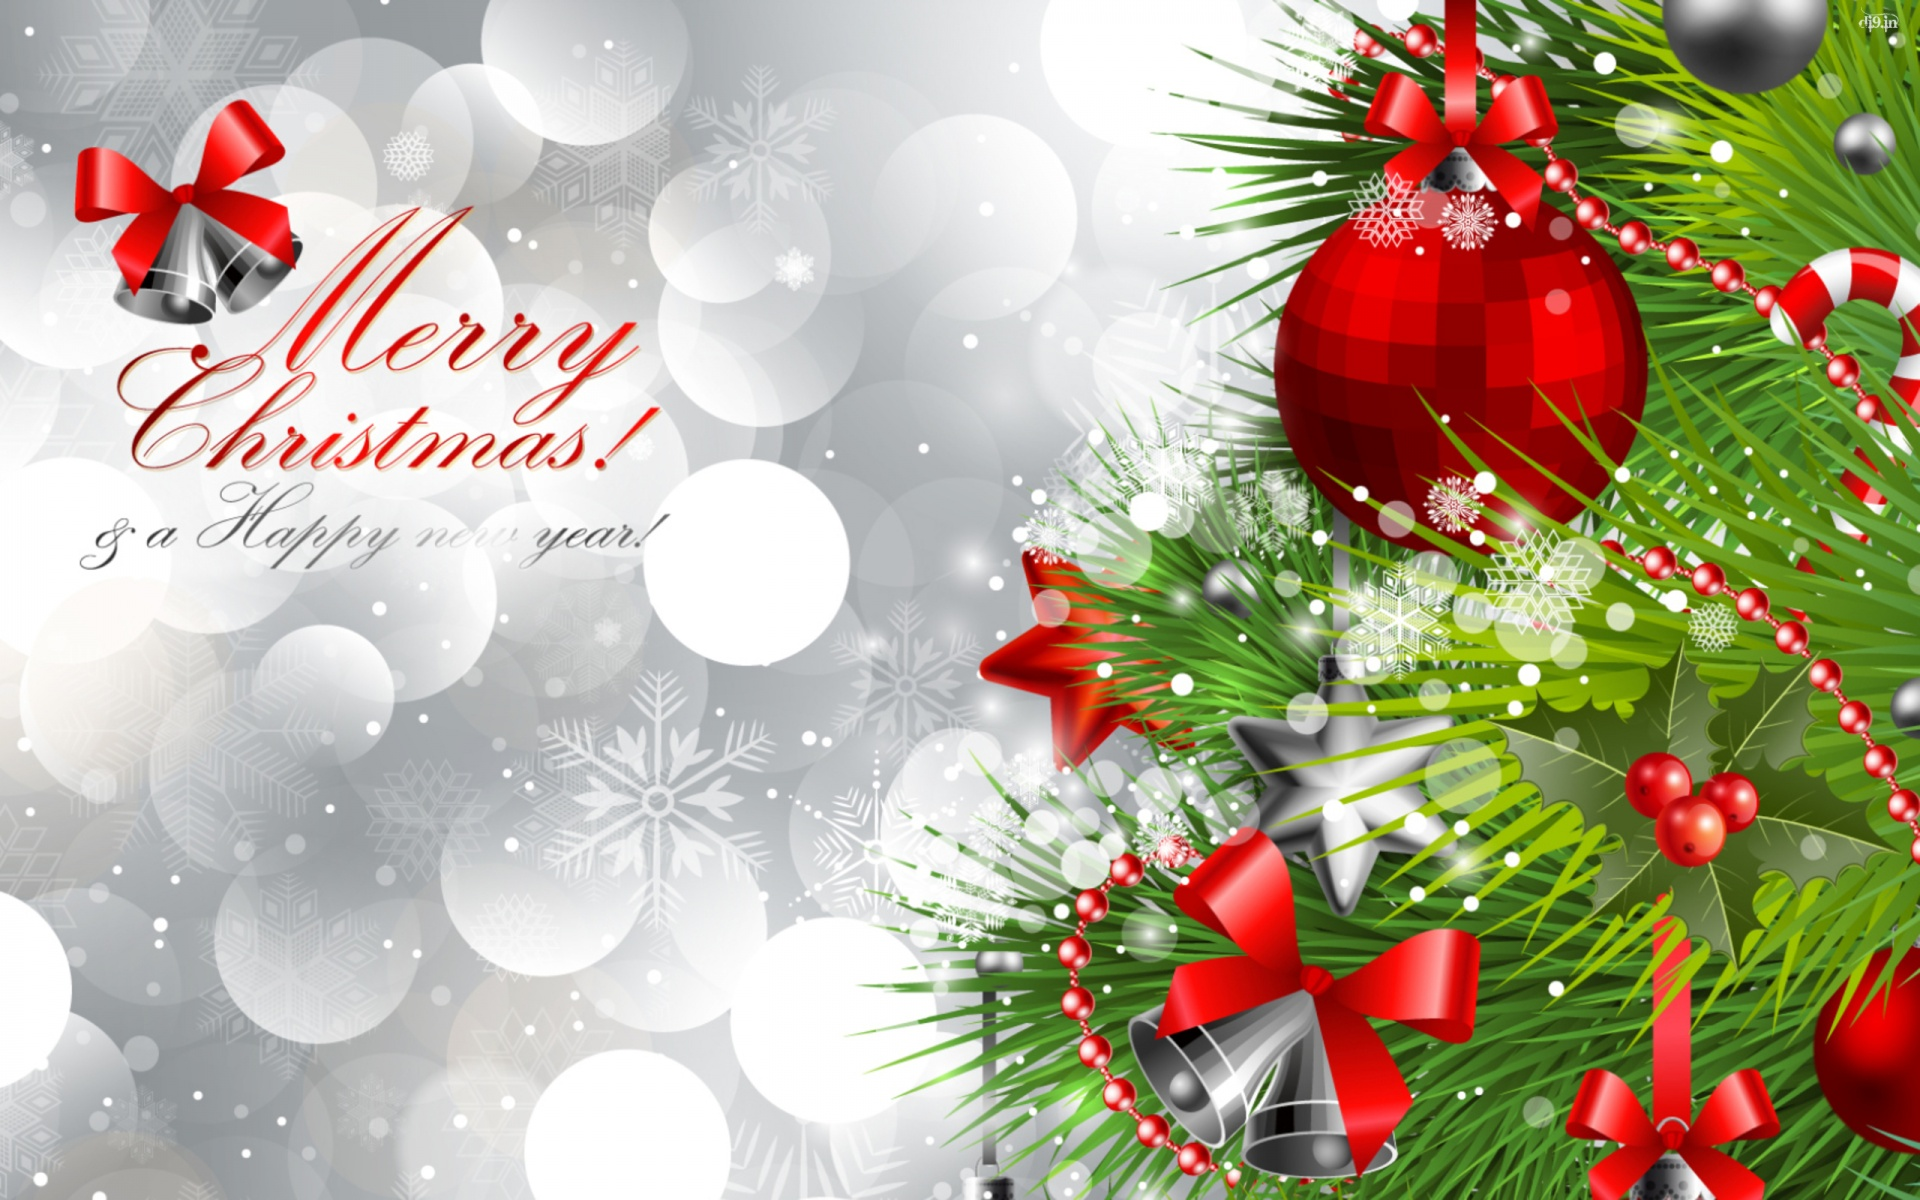 New-Christmas-wallpaper-2014